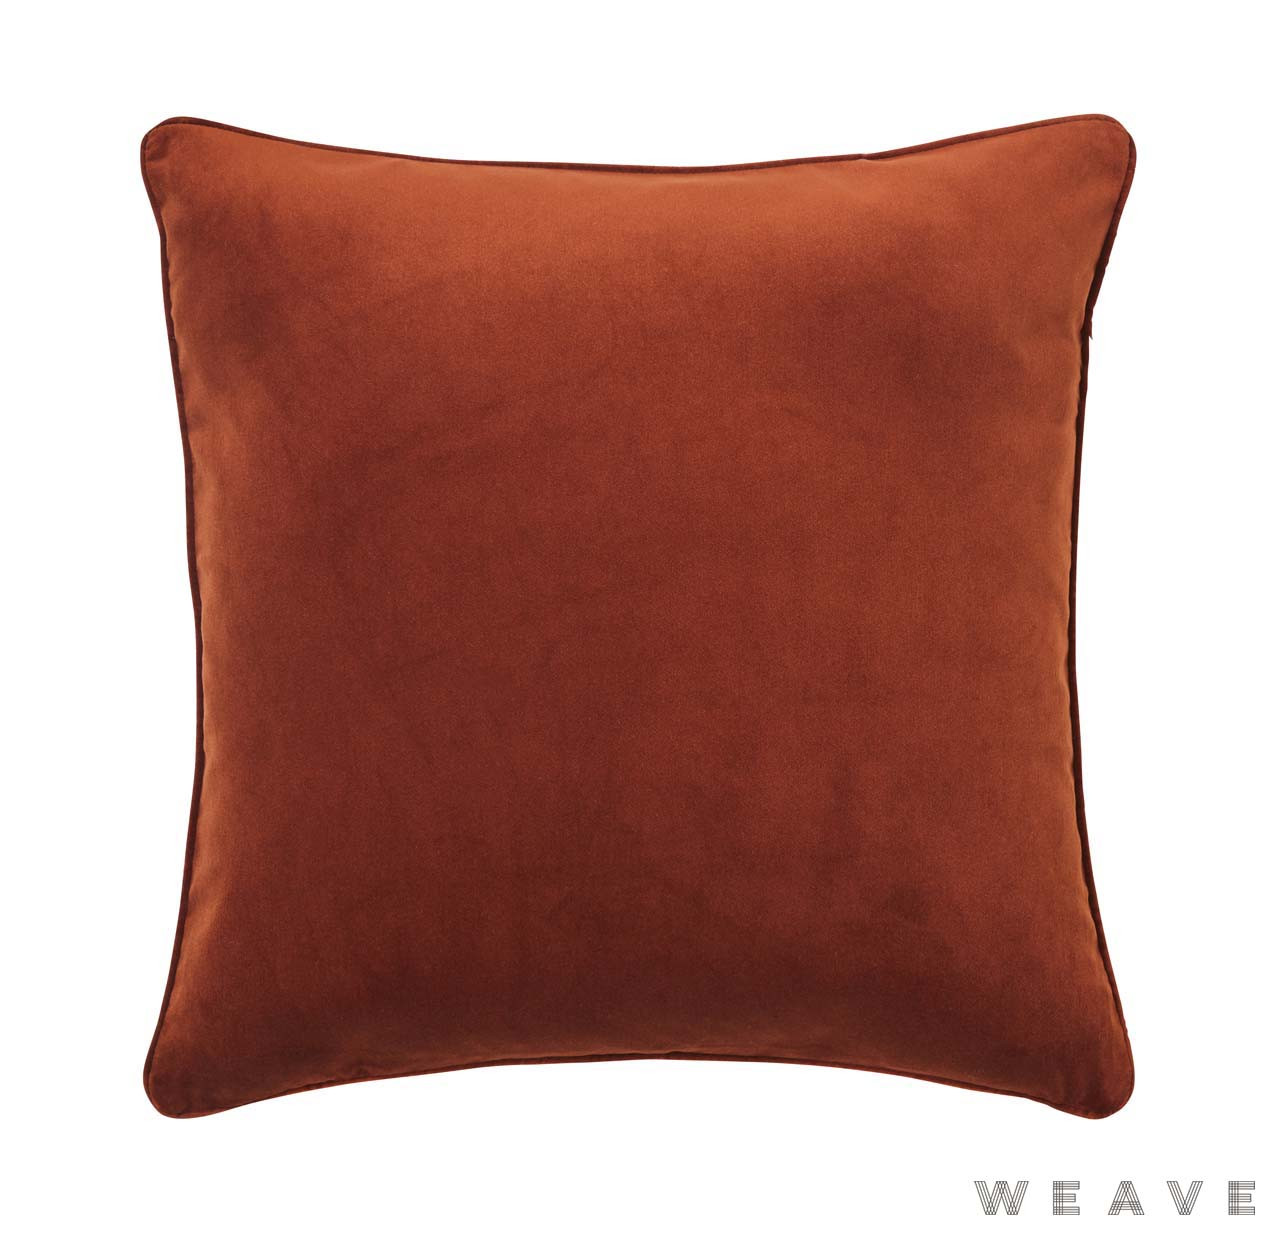 Weave - Zoe Cushion - Copper (Pack of 2)